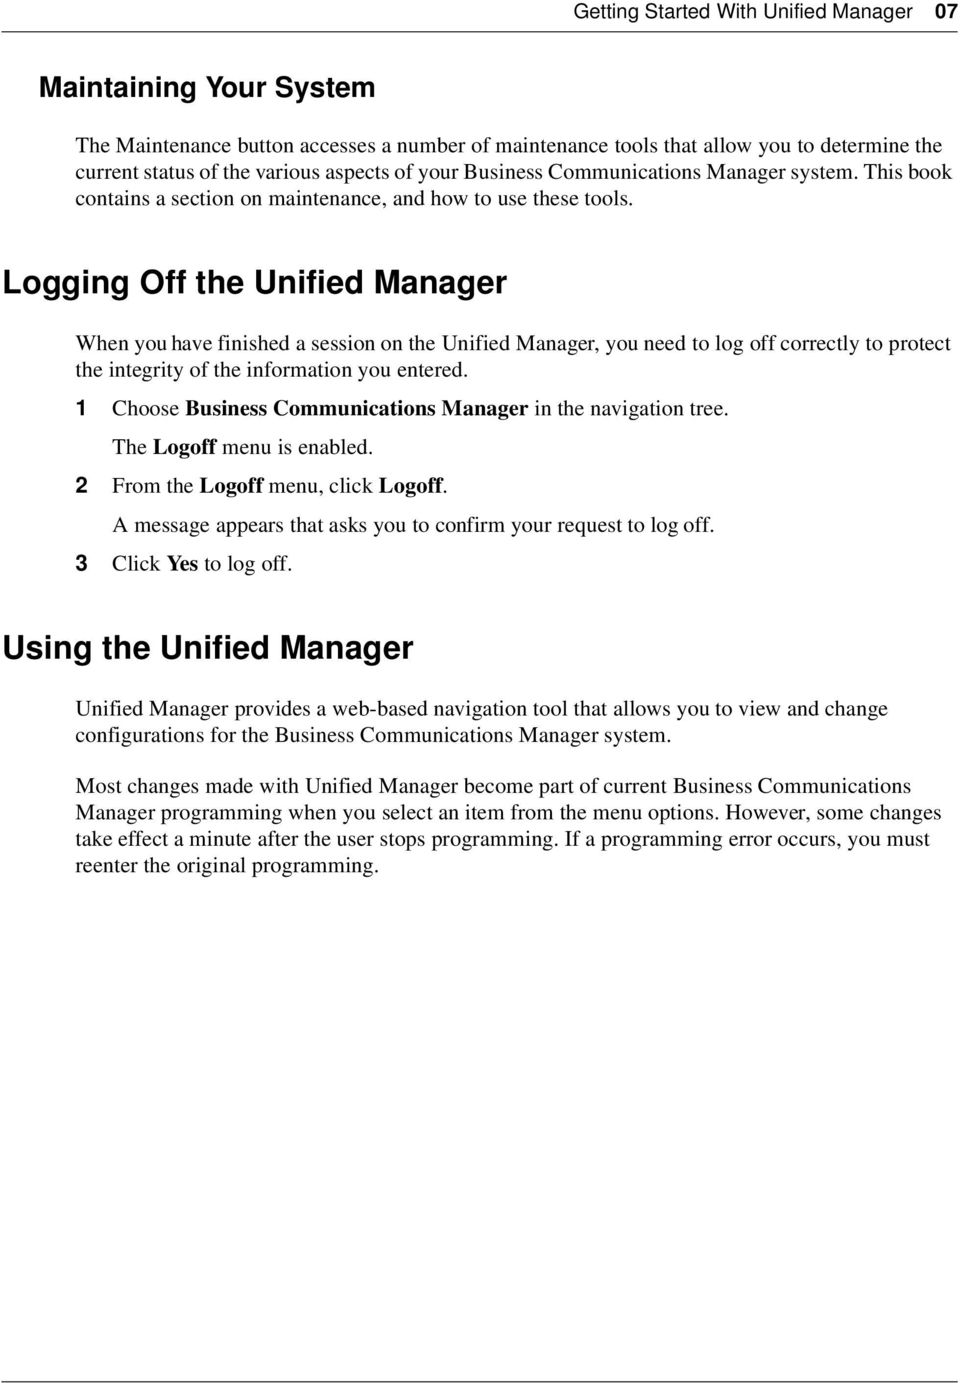 Logging Off the Unified Manager When you have finished a session on the Unified Manager, you need to log off correctly to protect the integrity of the information you entered.